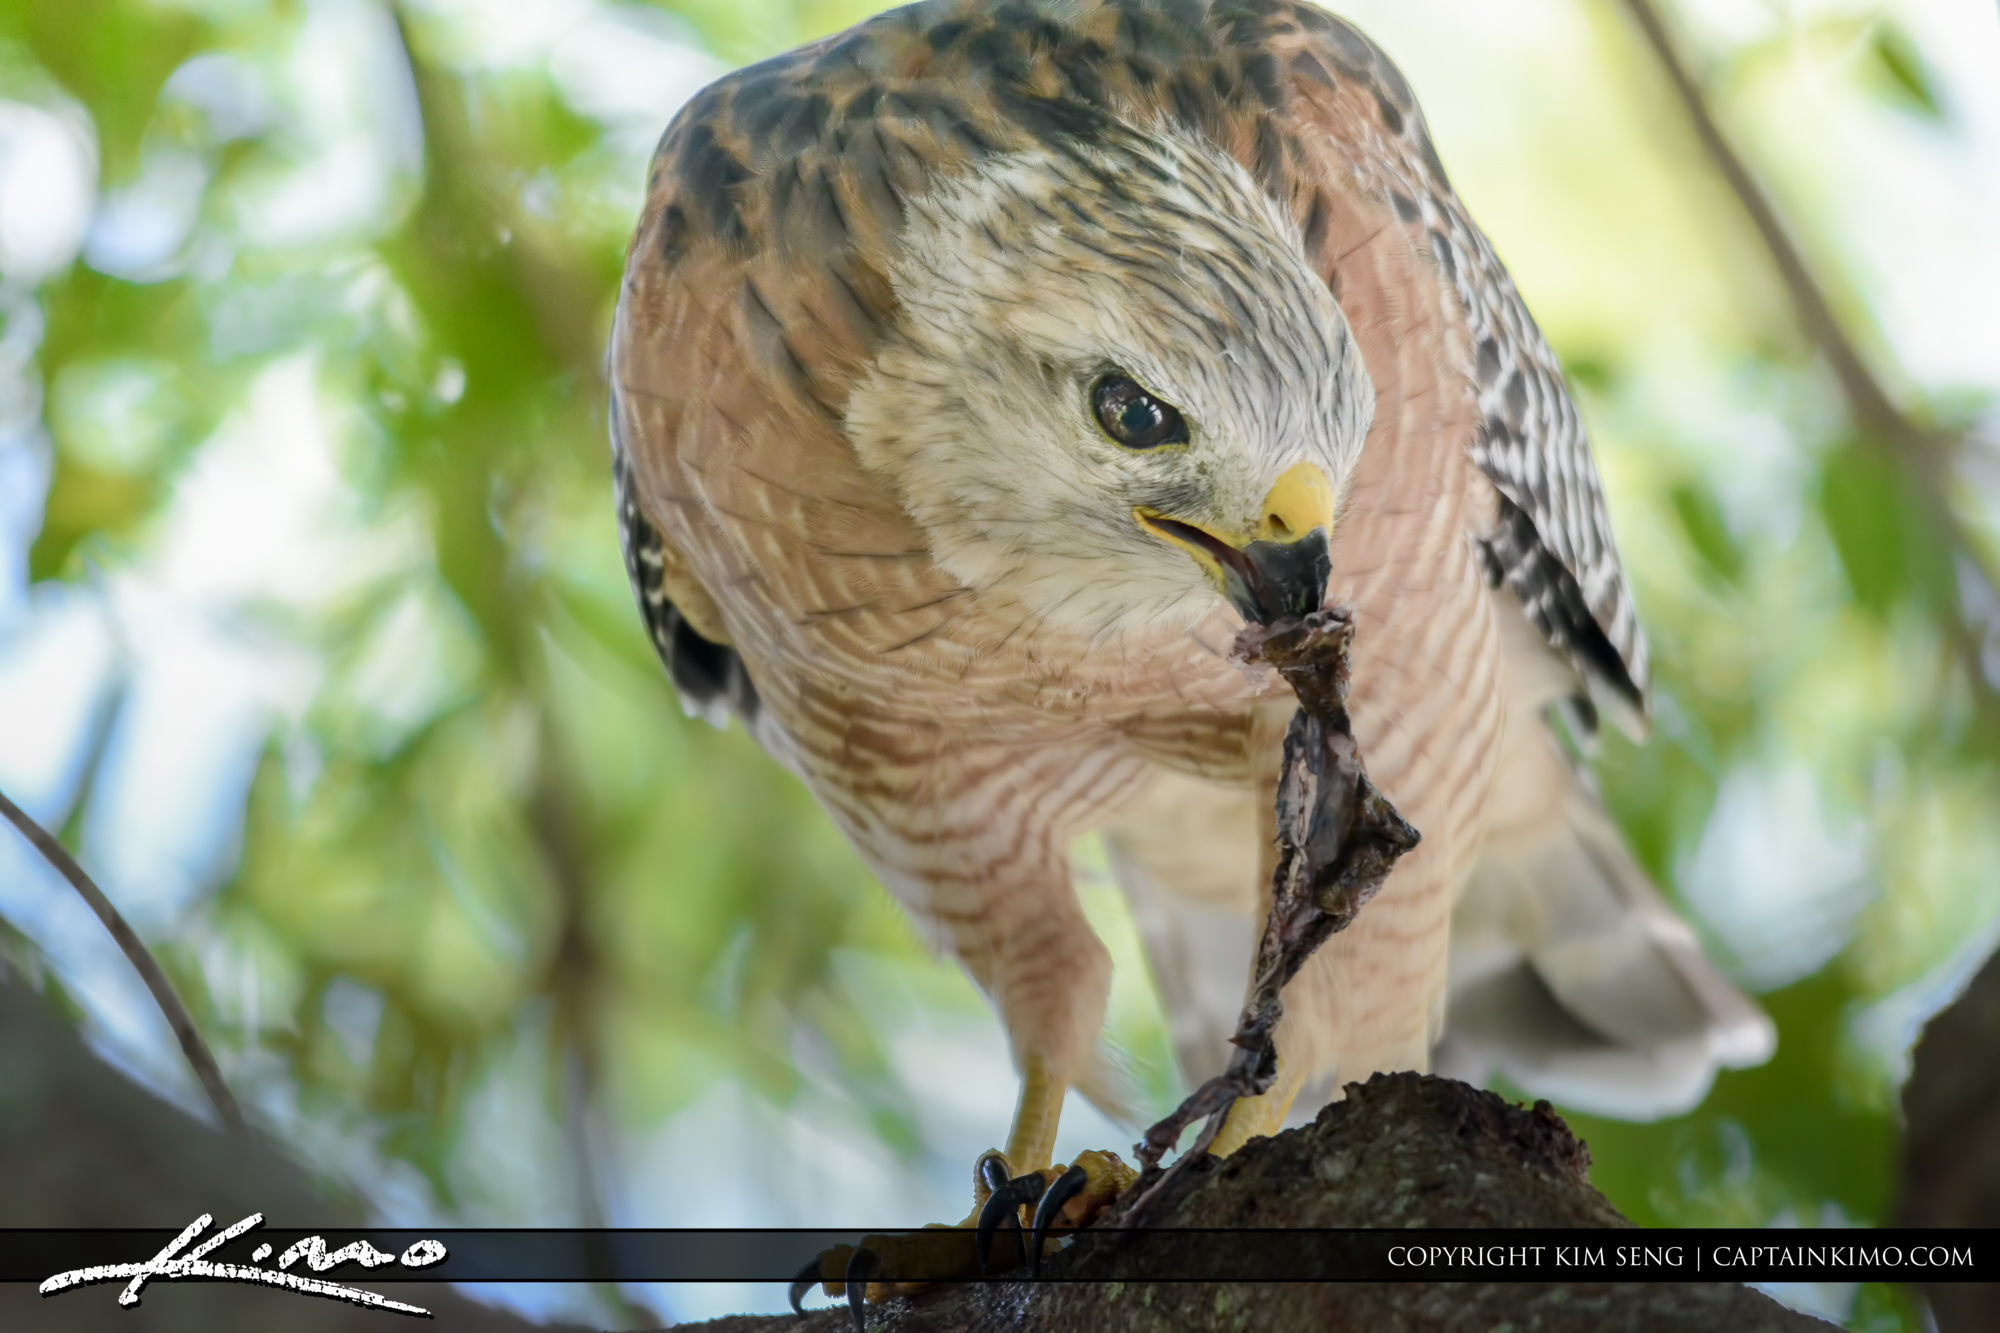 Red Tailed Hawk Eating Cane Toad